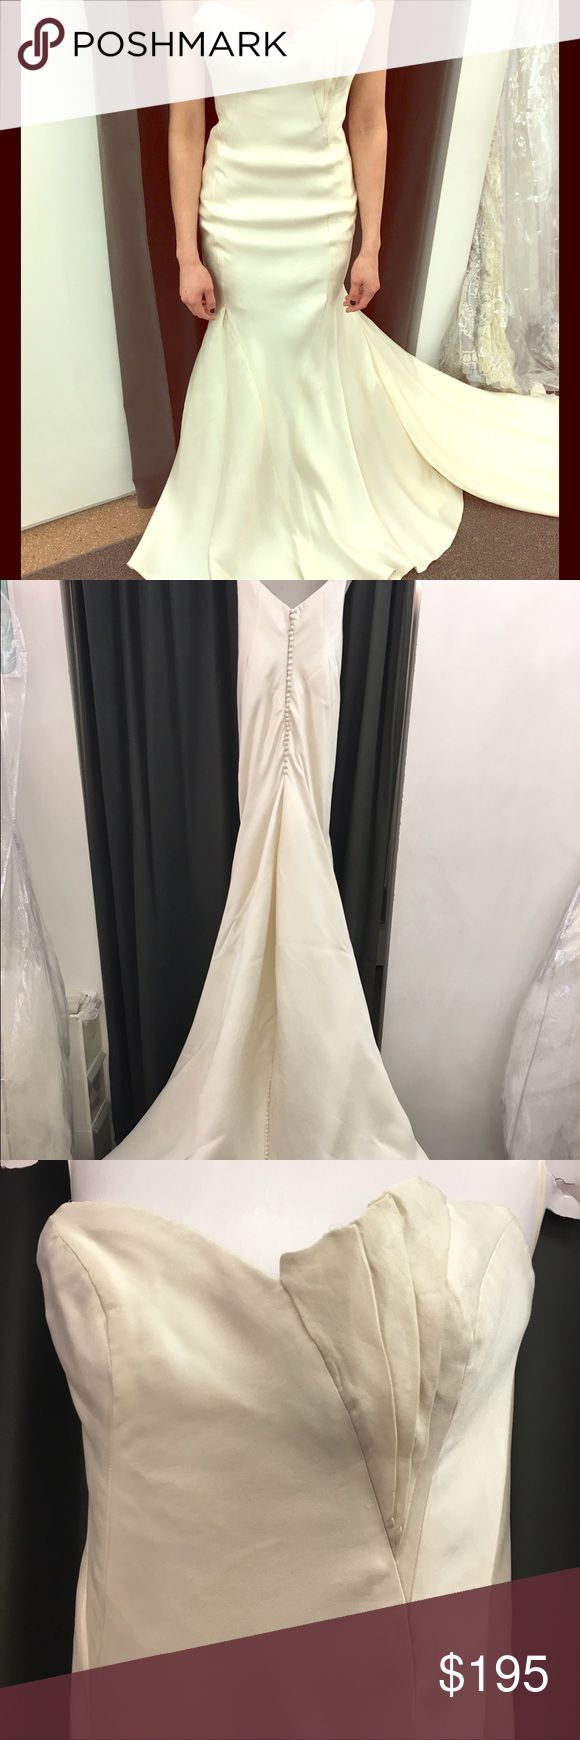 Ivory, silk satin, wedding gown by Anna Maier. Bridal size 2 (street size 0). Strapless wedding gown with pleated detail and buttons all the way down the back bodice to end of train. Fabric needs work but gown can be molded and customized to your vision!! It's a great base for your creation! Anna Maier Dresses Wedding